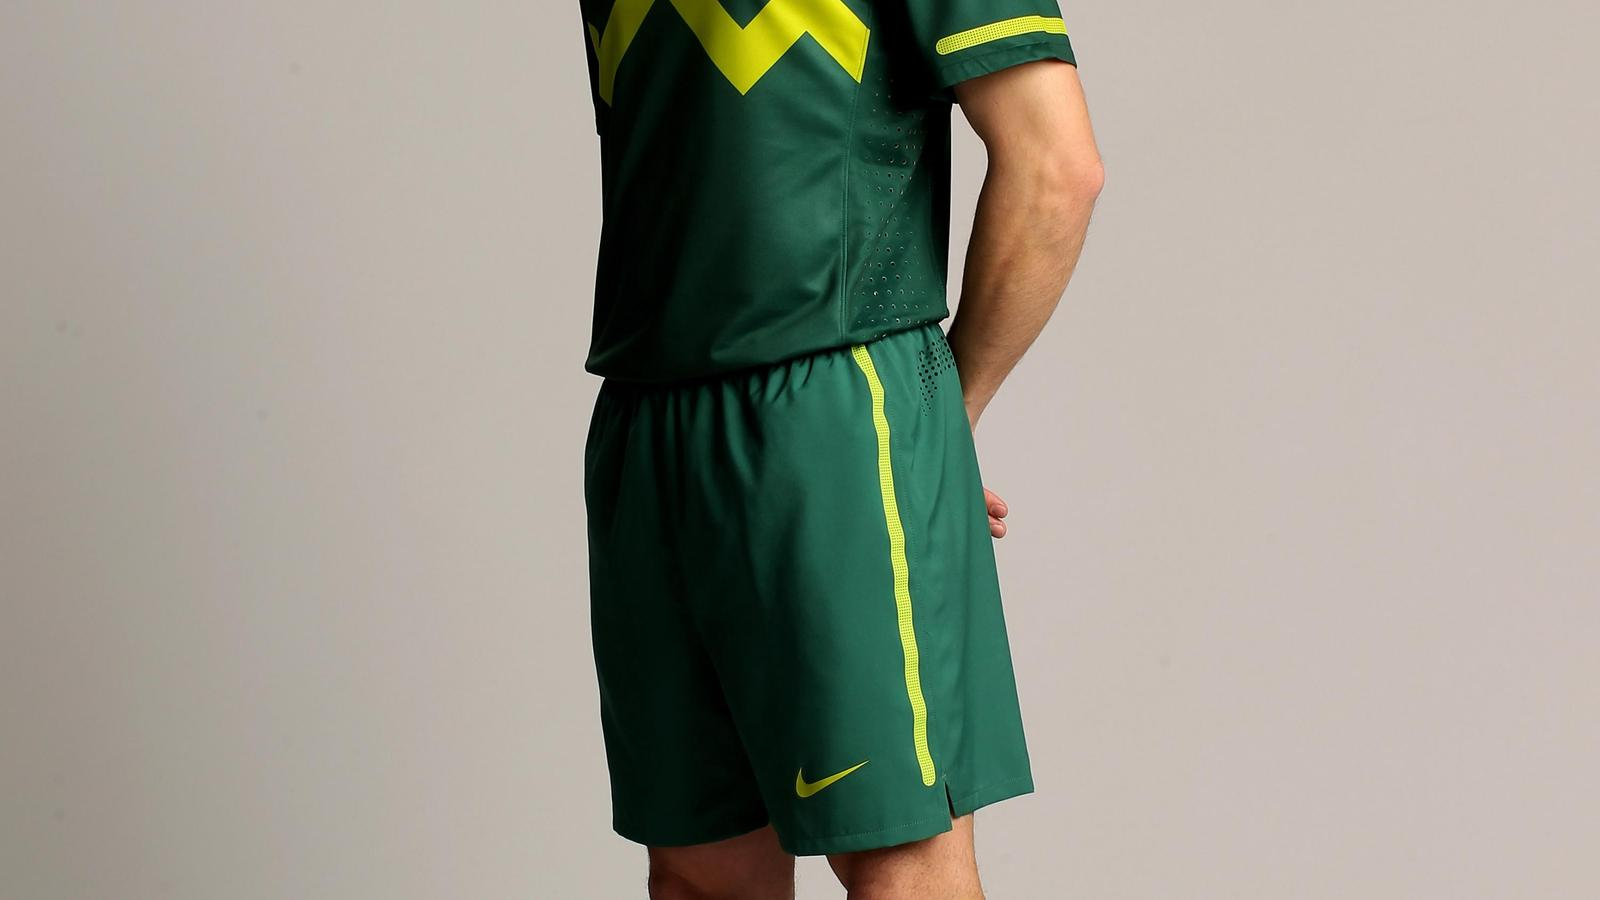 86aa4dff6e1 Environmentally Friendly 2010 World Cup Kits Launched